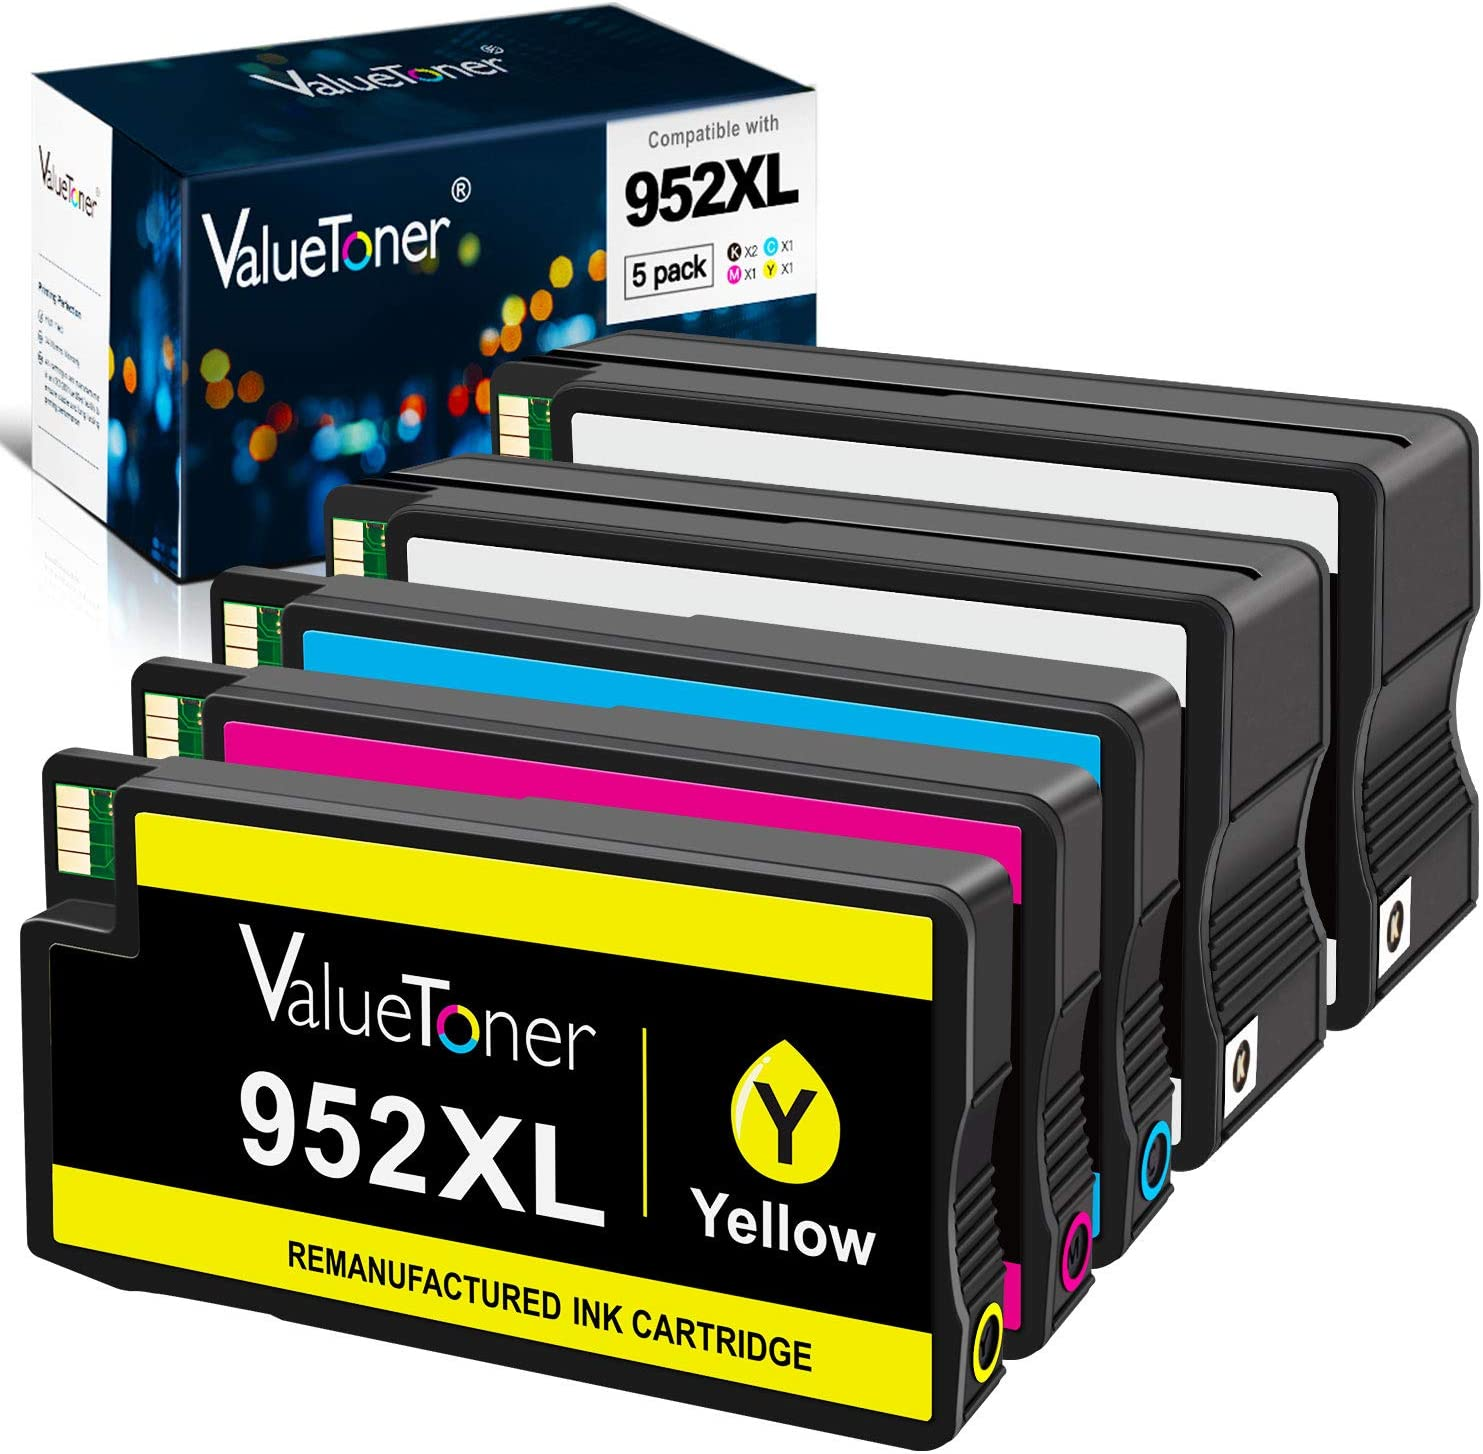 Valuetoner Remanufactured Ink Cartridges Replacement for HP 952 XL 952XL 952 High Yield for OfficeJet Pro 8710 8720 7740 8740 7720 8715 8702 Printer (2 Black,1 Cyan,1 Magenta,1 Yellow, 5 Pack)